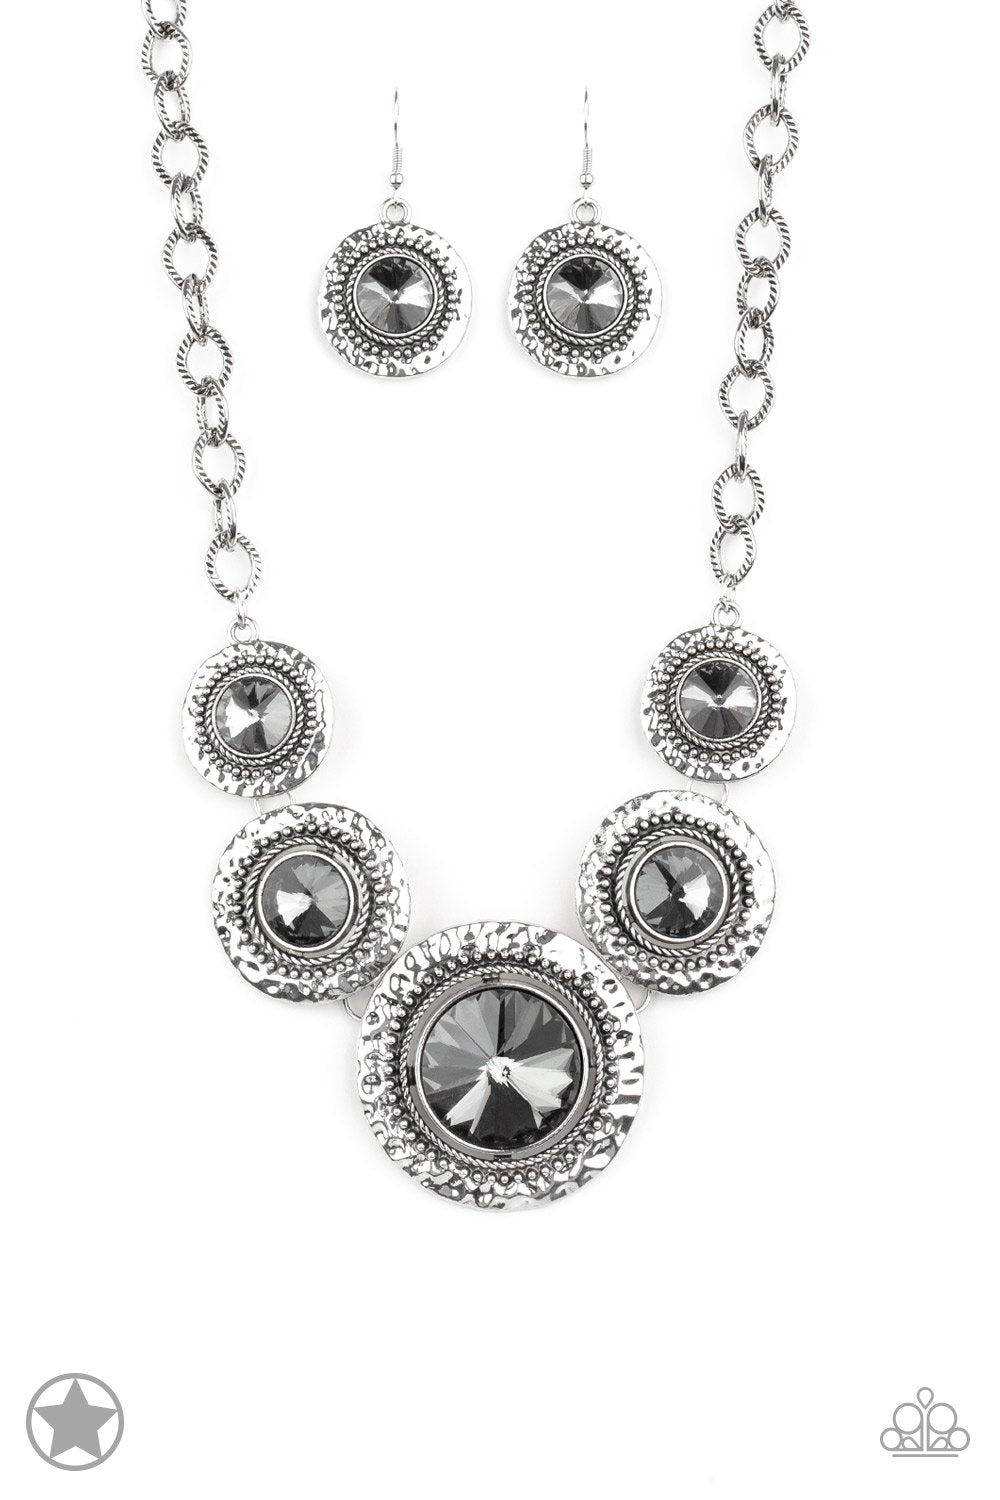 Global Glamour - Silver Paparazzi Necklace